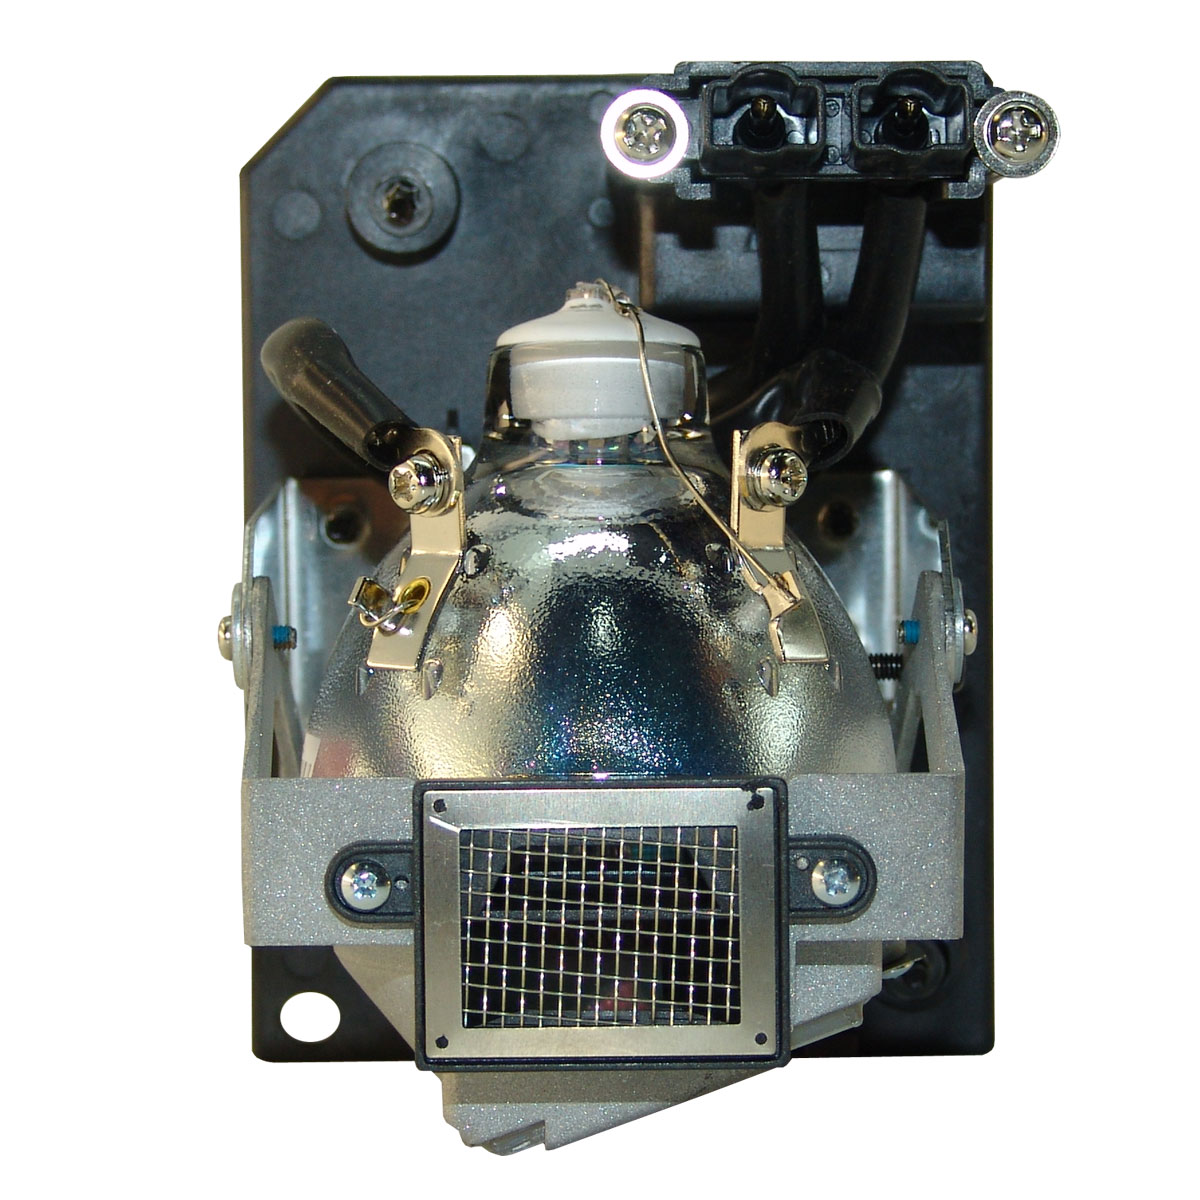 Lutema Economy for Eiki AH-45001 Projector Lamp (Bulb Only) - image 4 of 5